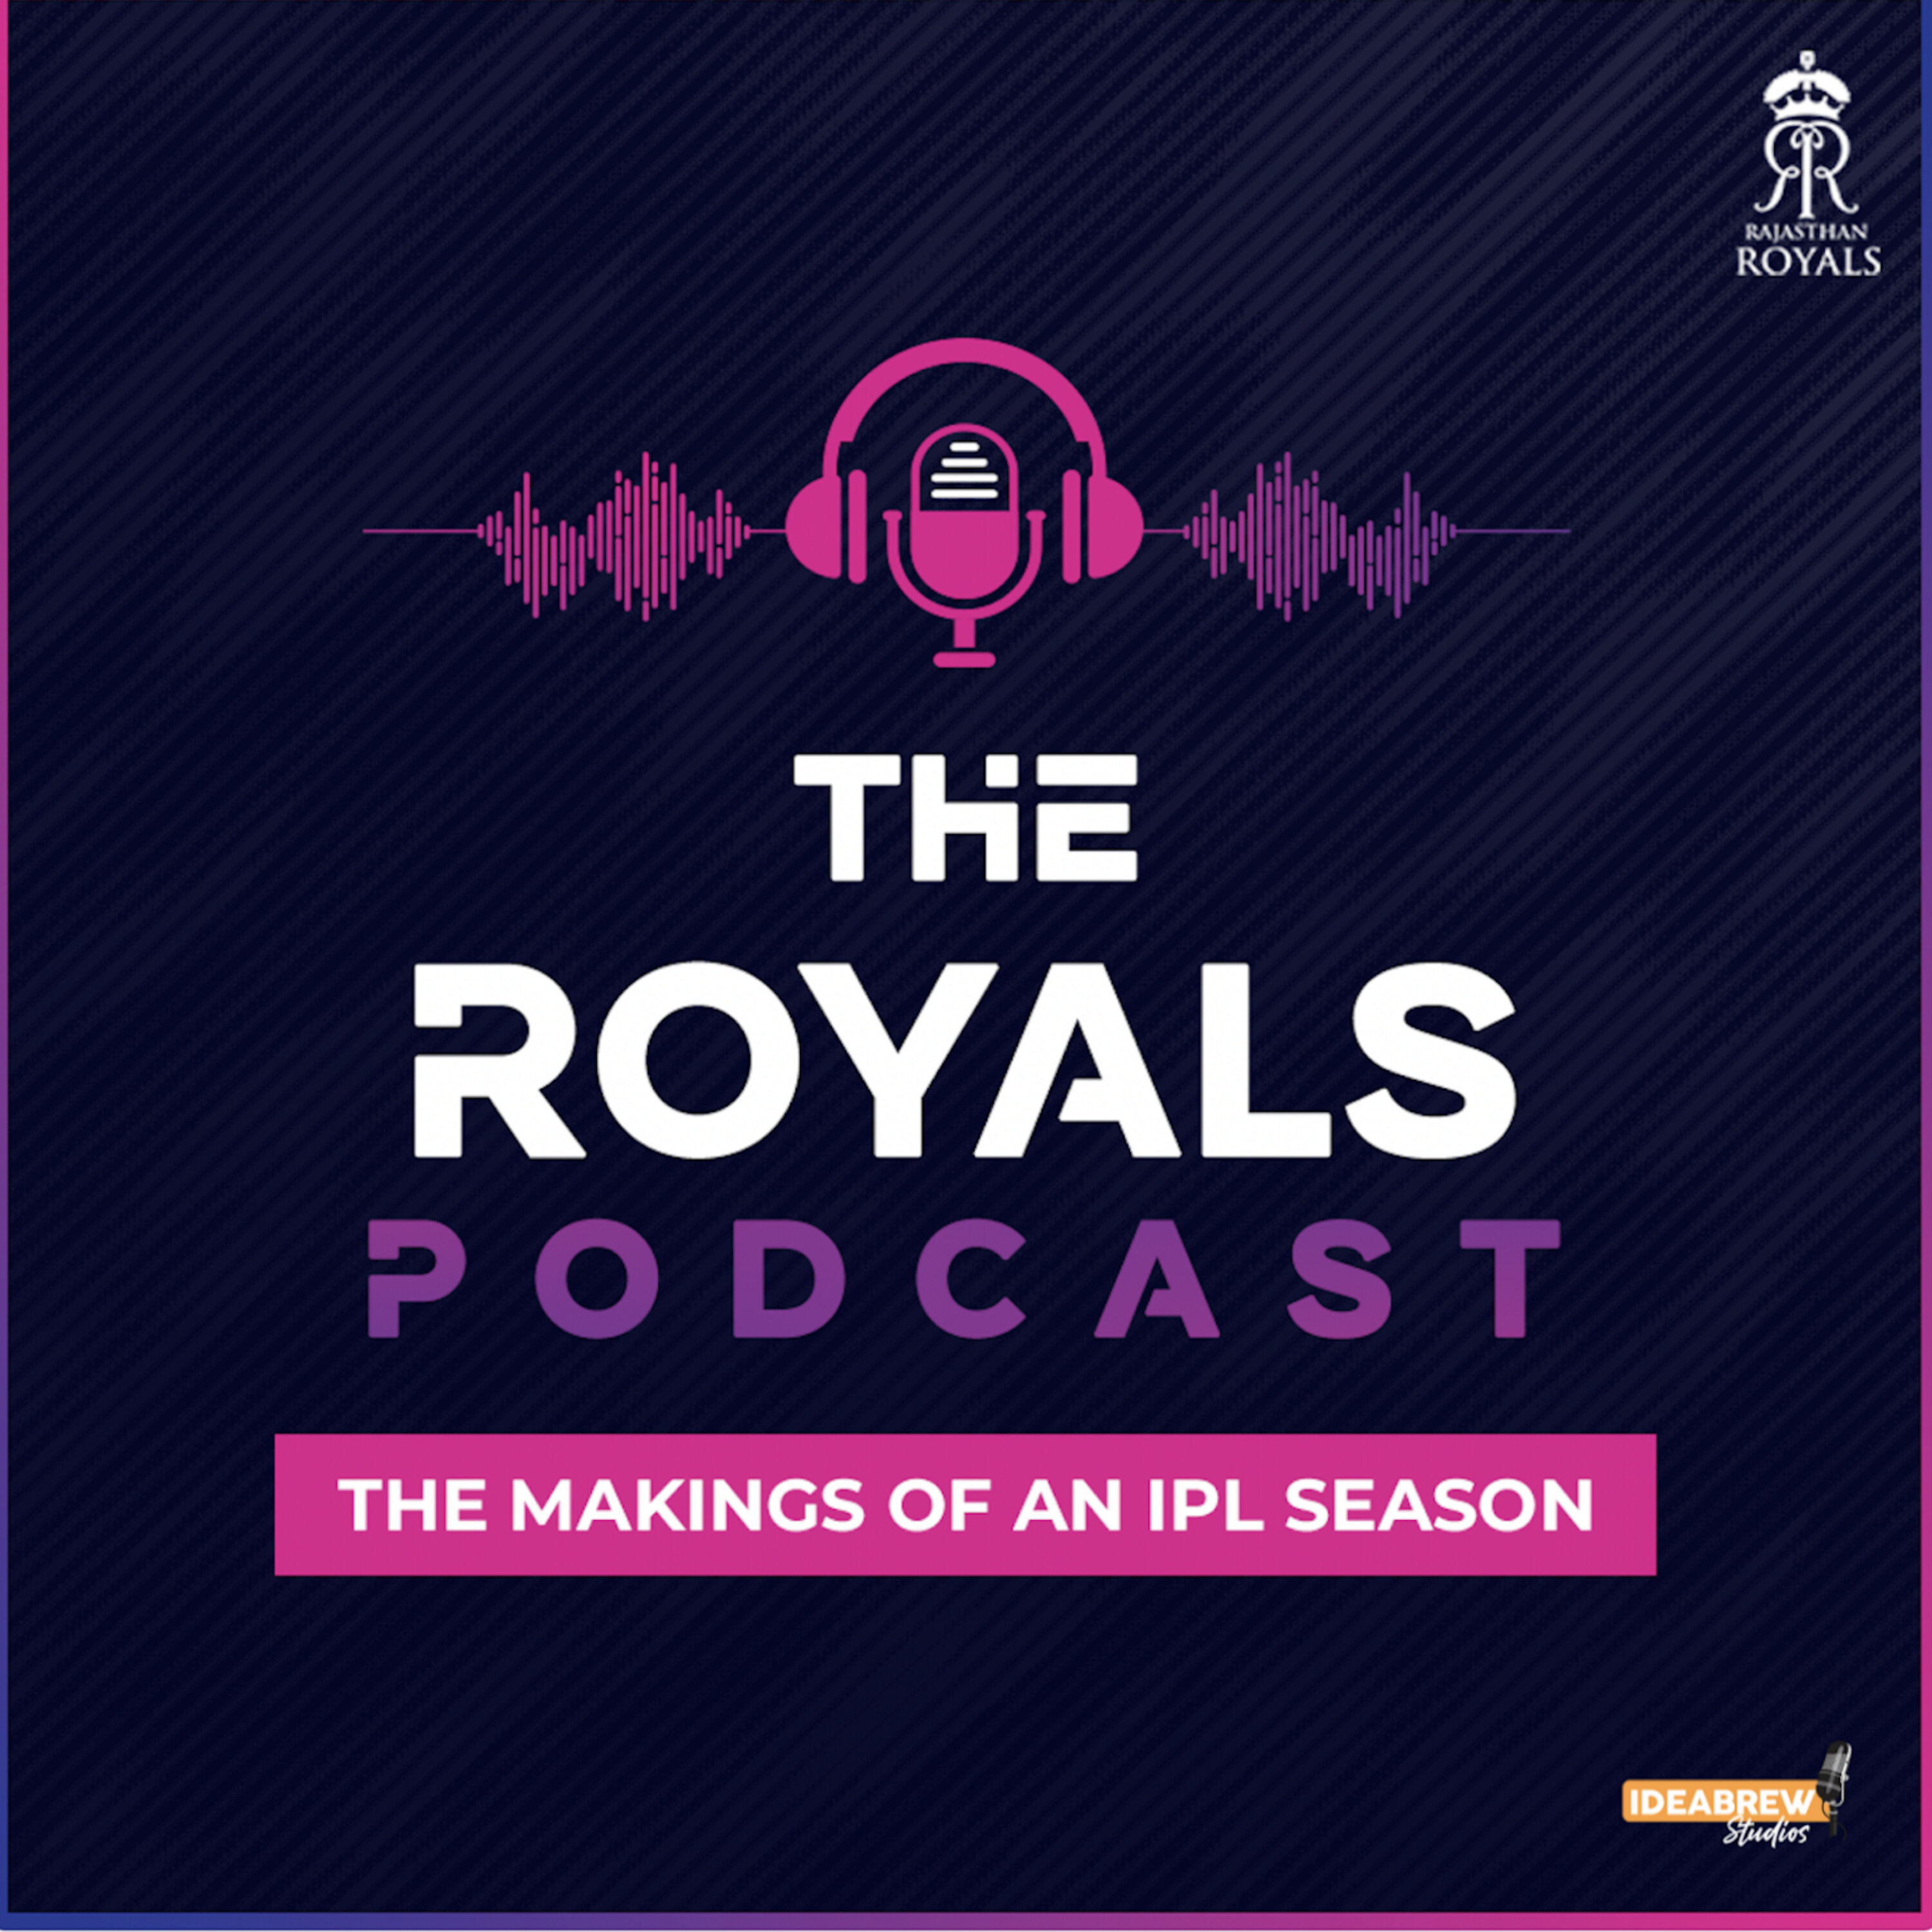 The Royals Podcast